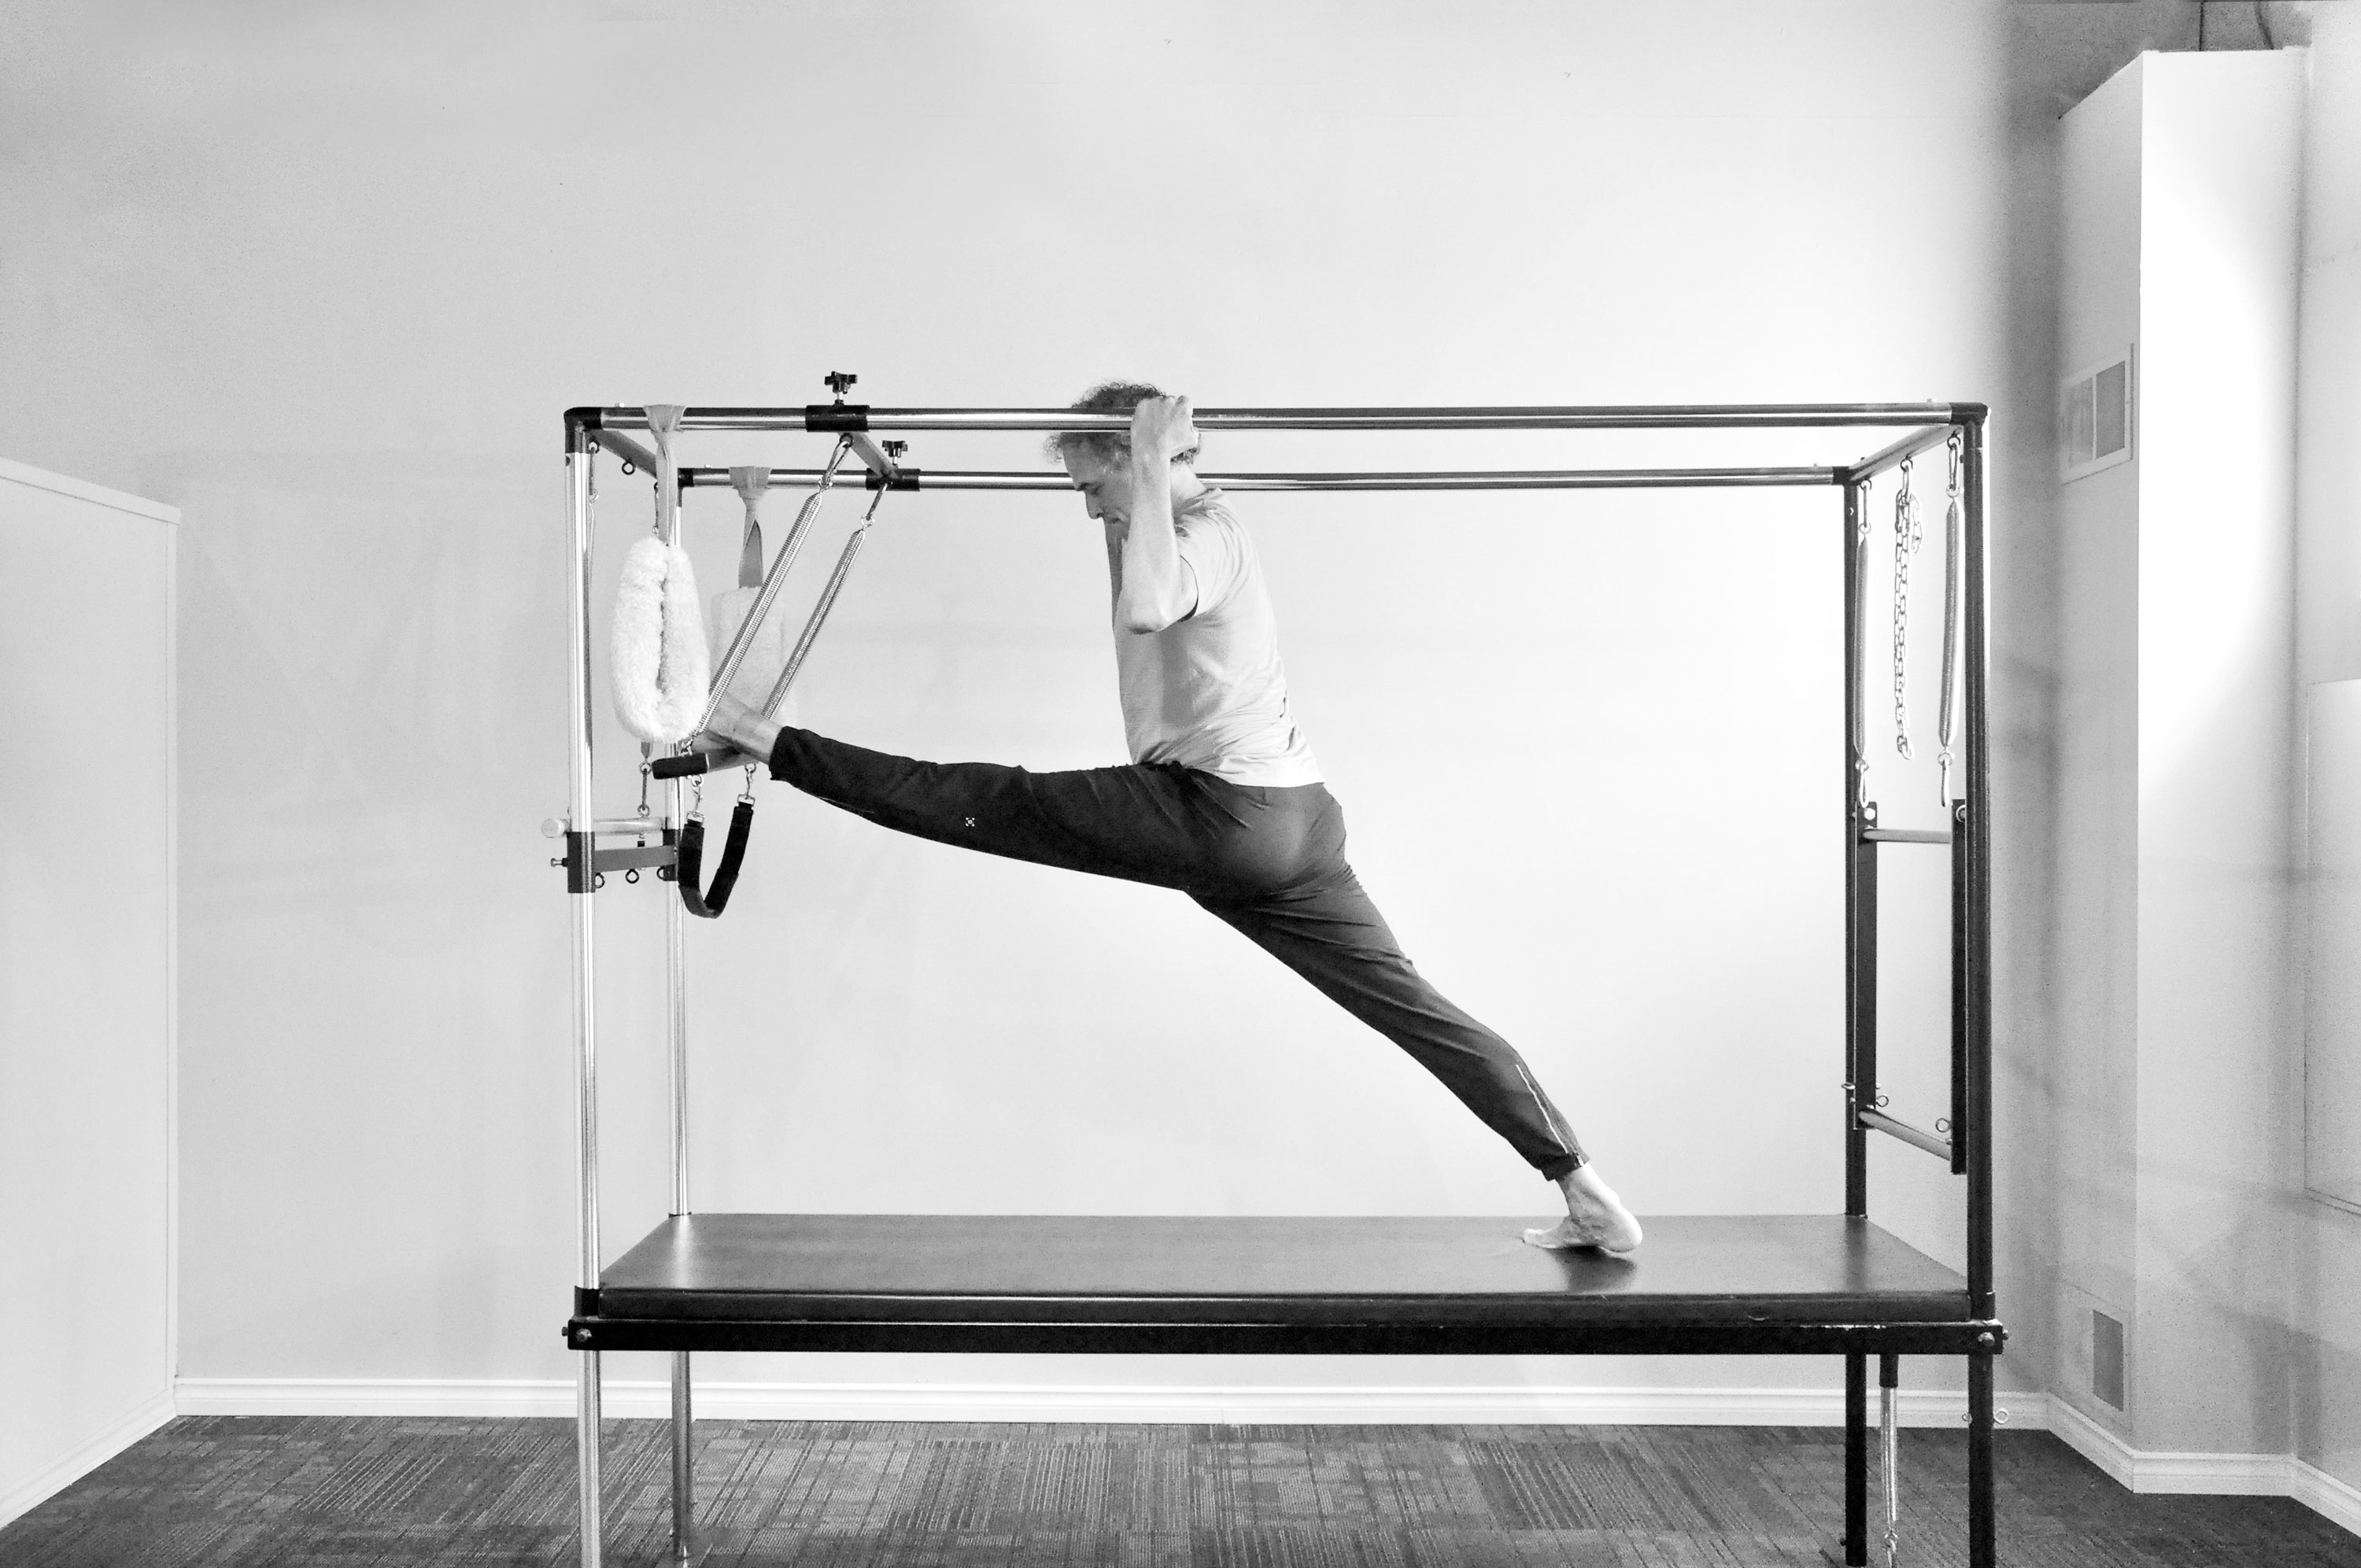 Pilates Cadillac pose, Pilates Works, Oakville, Ontario